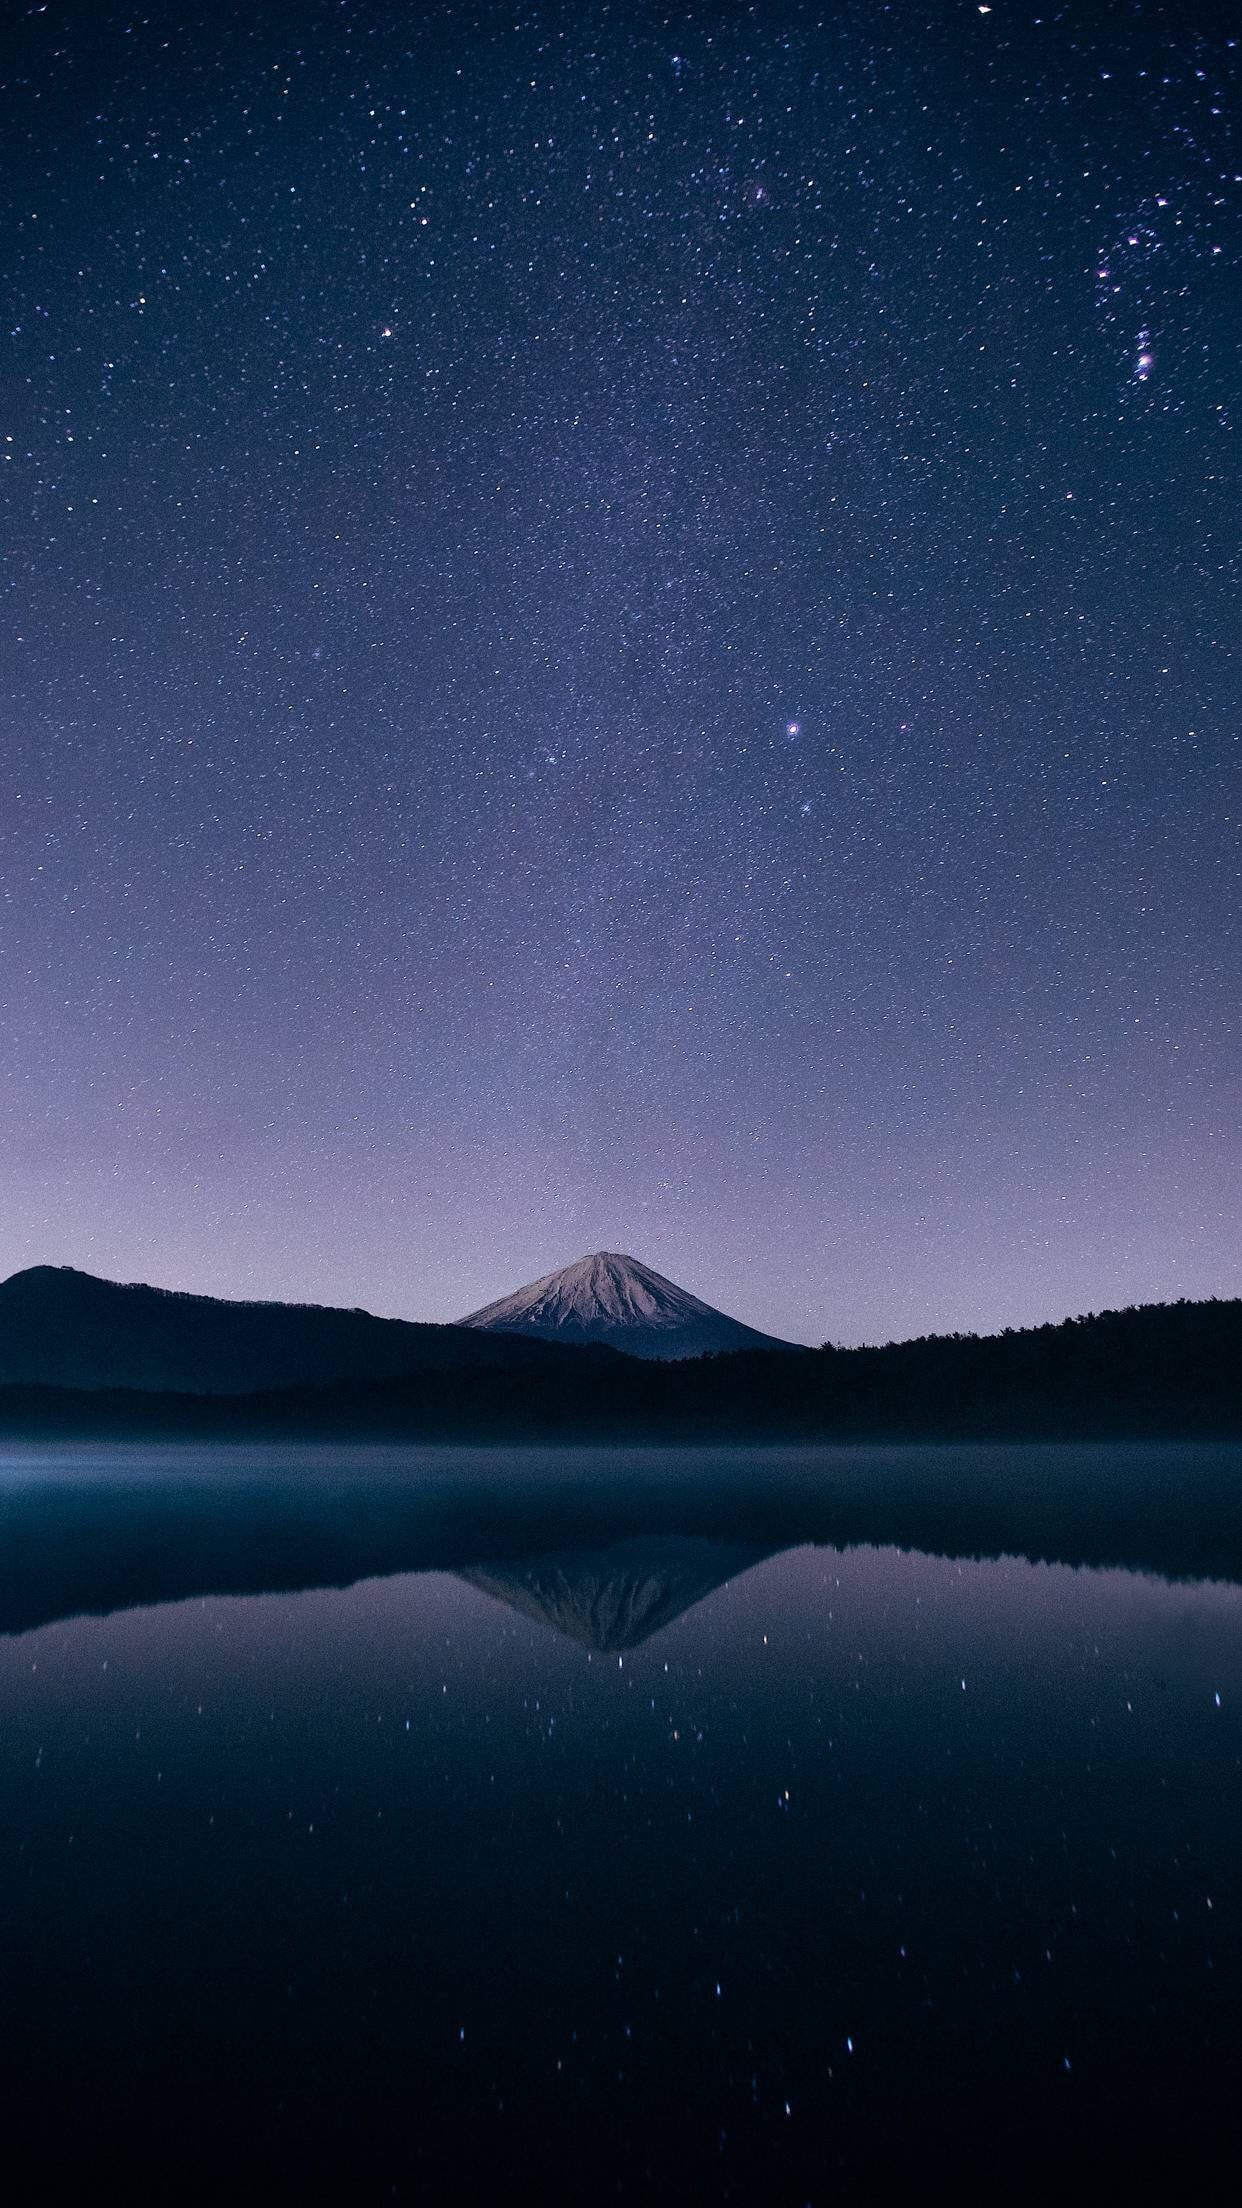 Vertical Stars Dark Sky Reflection 1080p Wallpaper Hdwallpaper Desktop Scenery Sky Lake Background